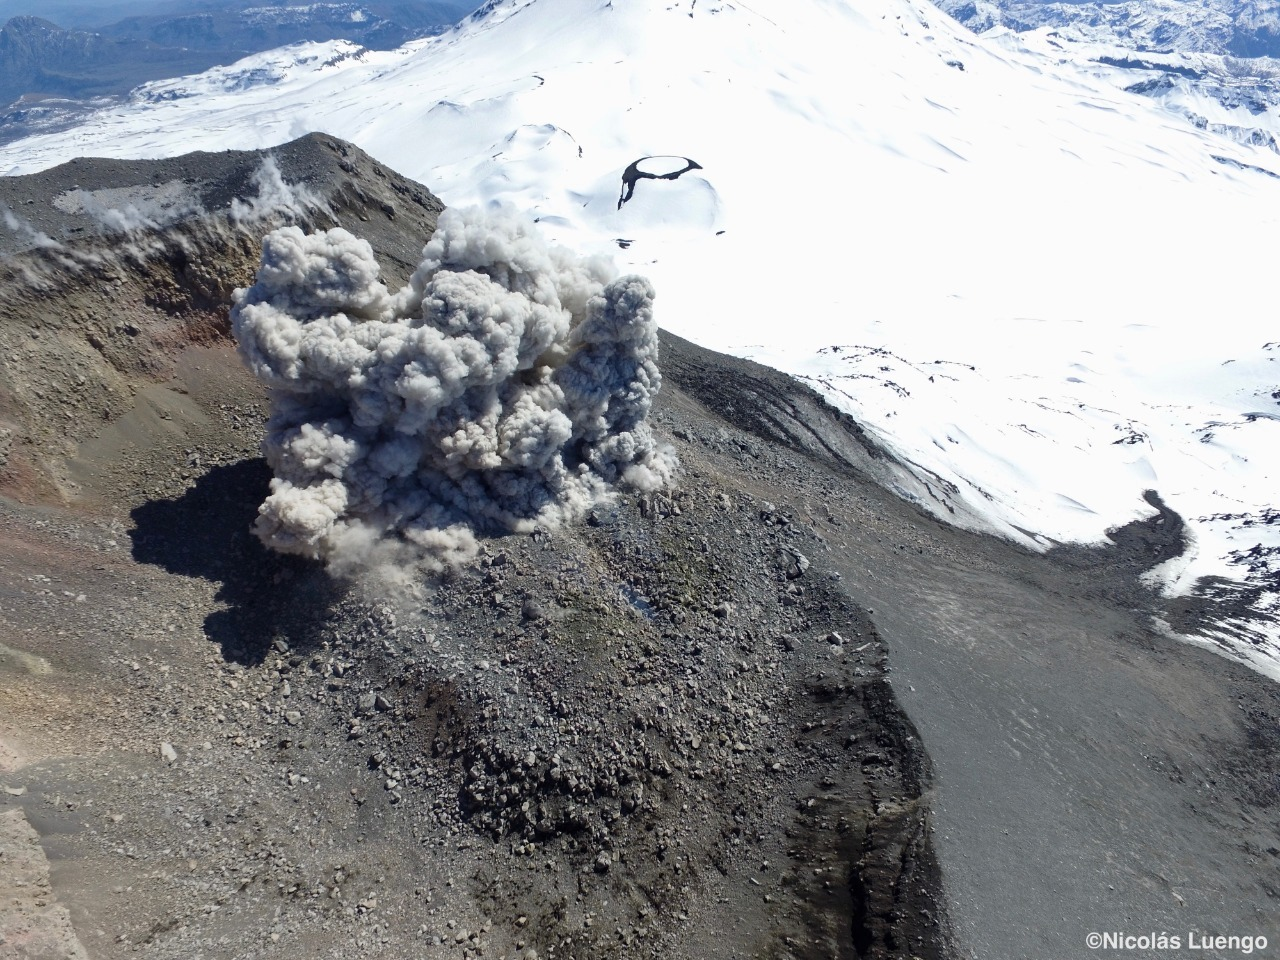 06 Septembre 2019. FR. Hawaii : Mauna Loa , Chili , Nevados de Chillan , El Salvador : San Miguel ( Chaparrastique ) , Mexique : Popocatepetl .